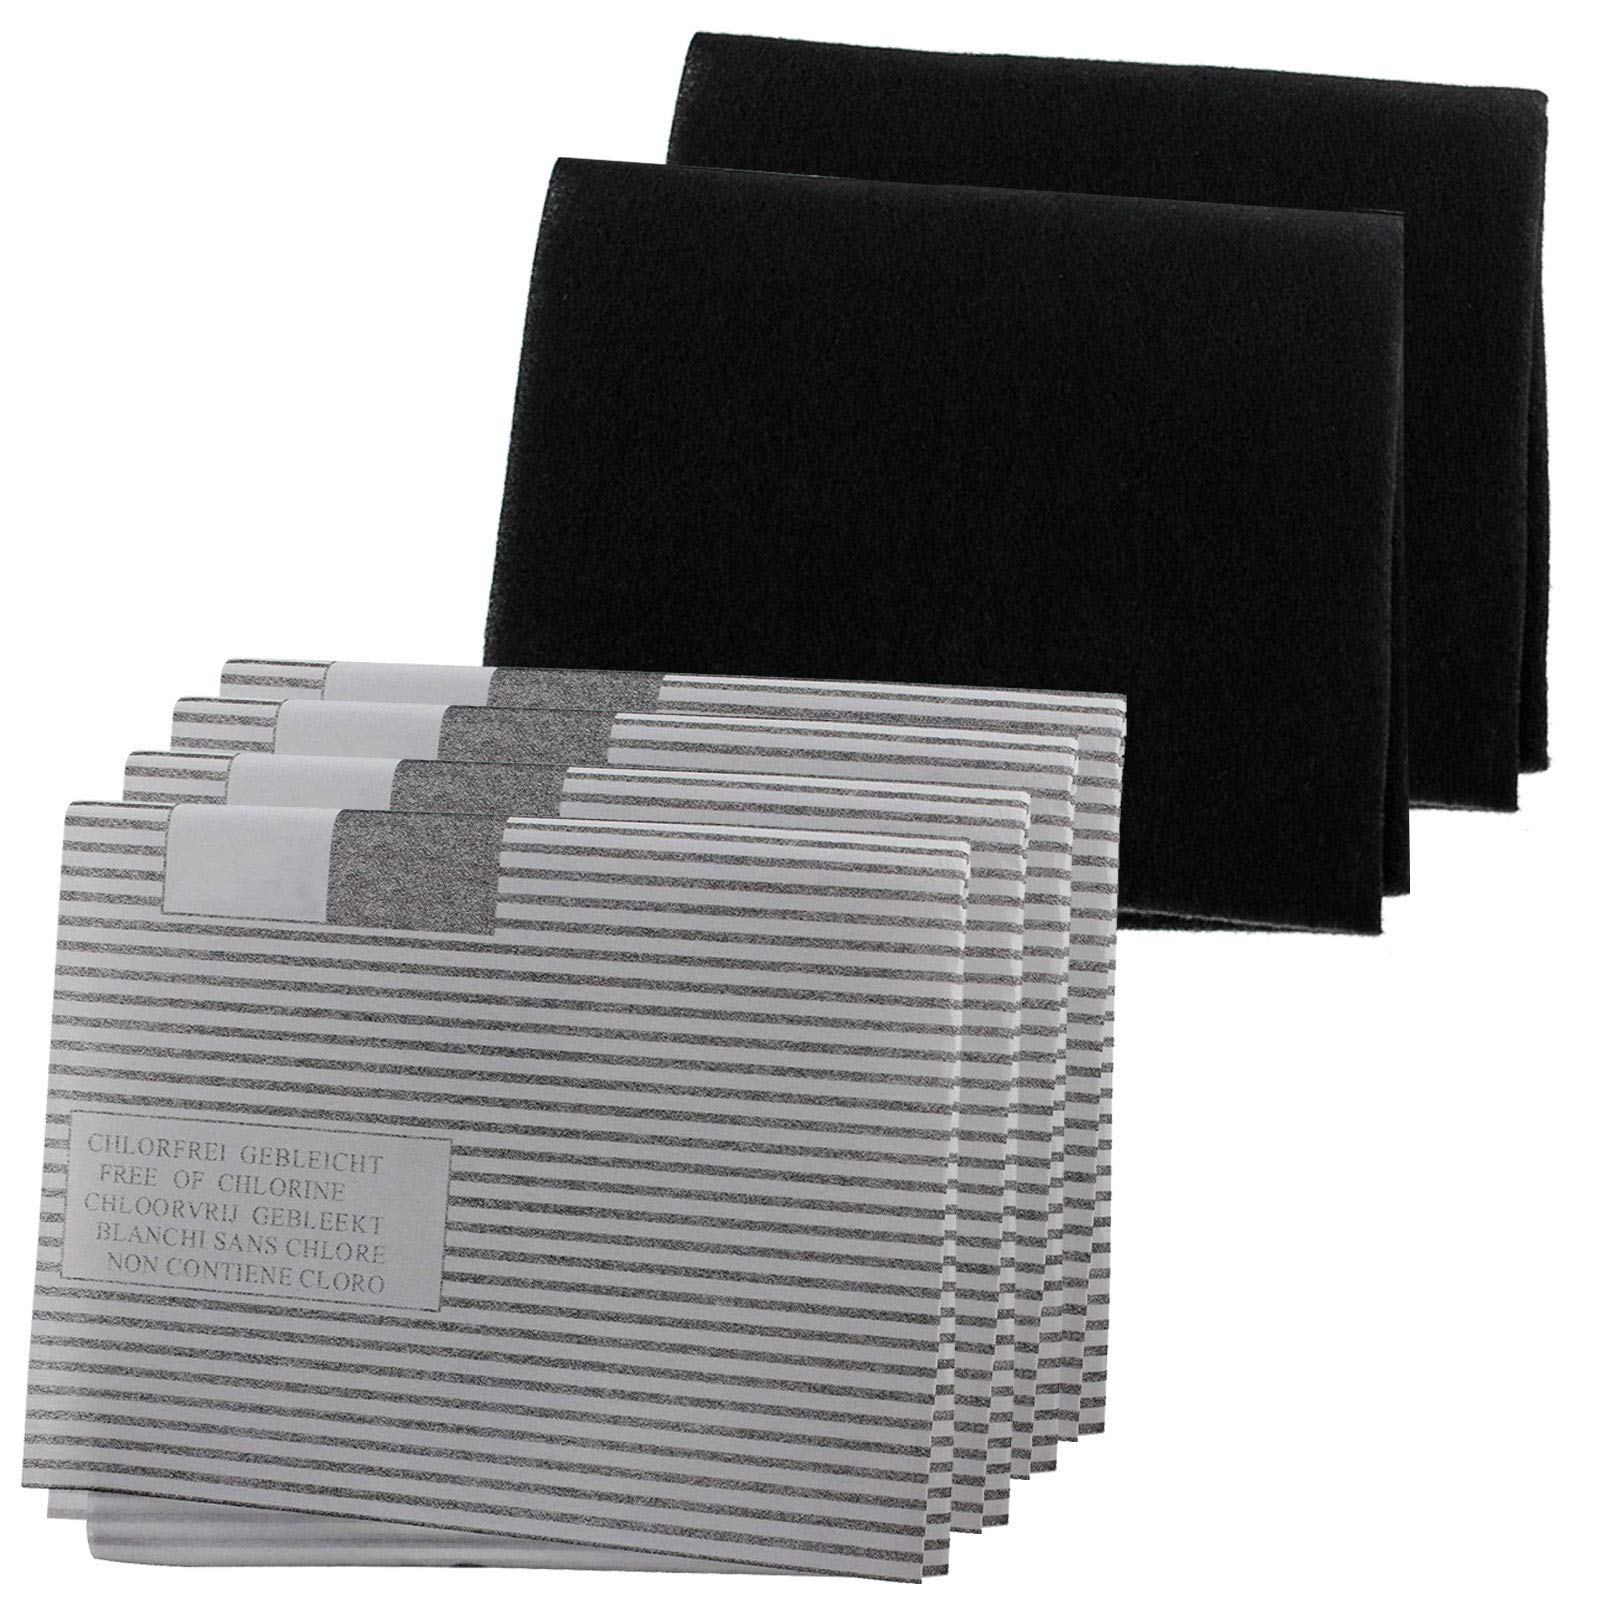 Spares2go Universal Cooker Hood Grease Filter Kit For Extractor Fan Vent 2 Packs Of 2 Filters Cut to size